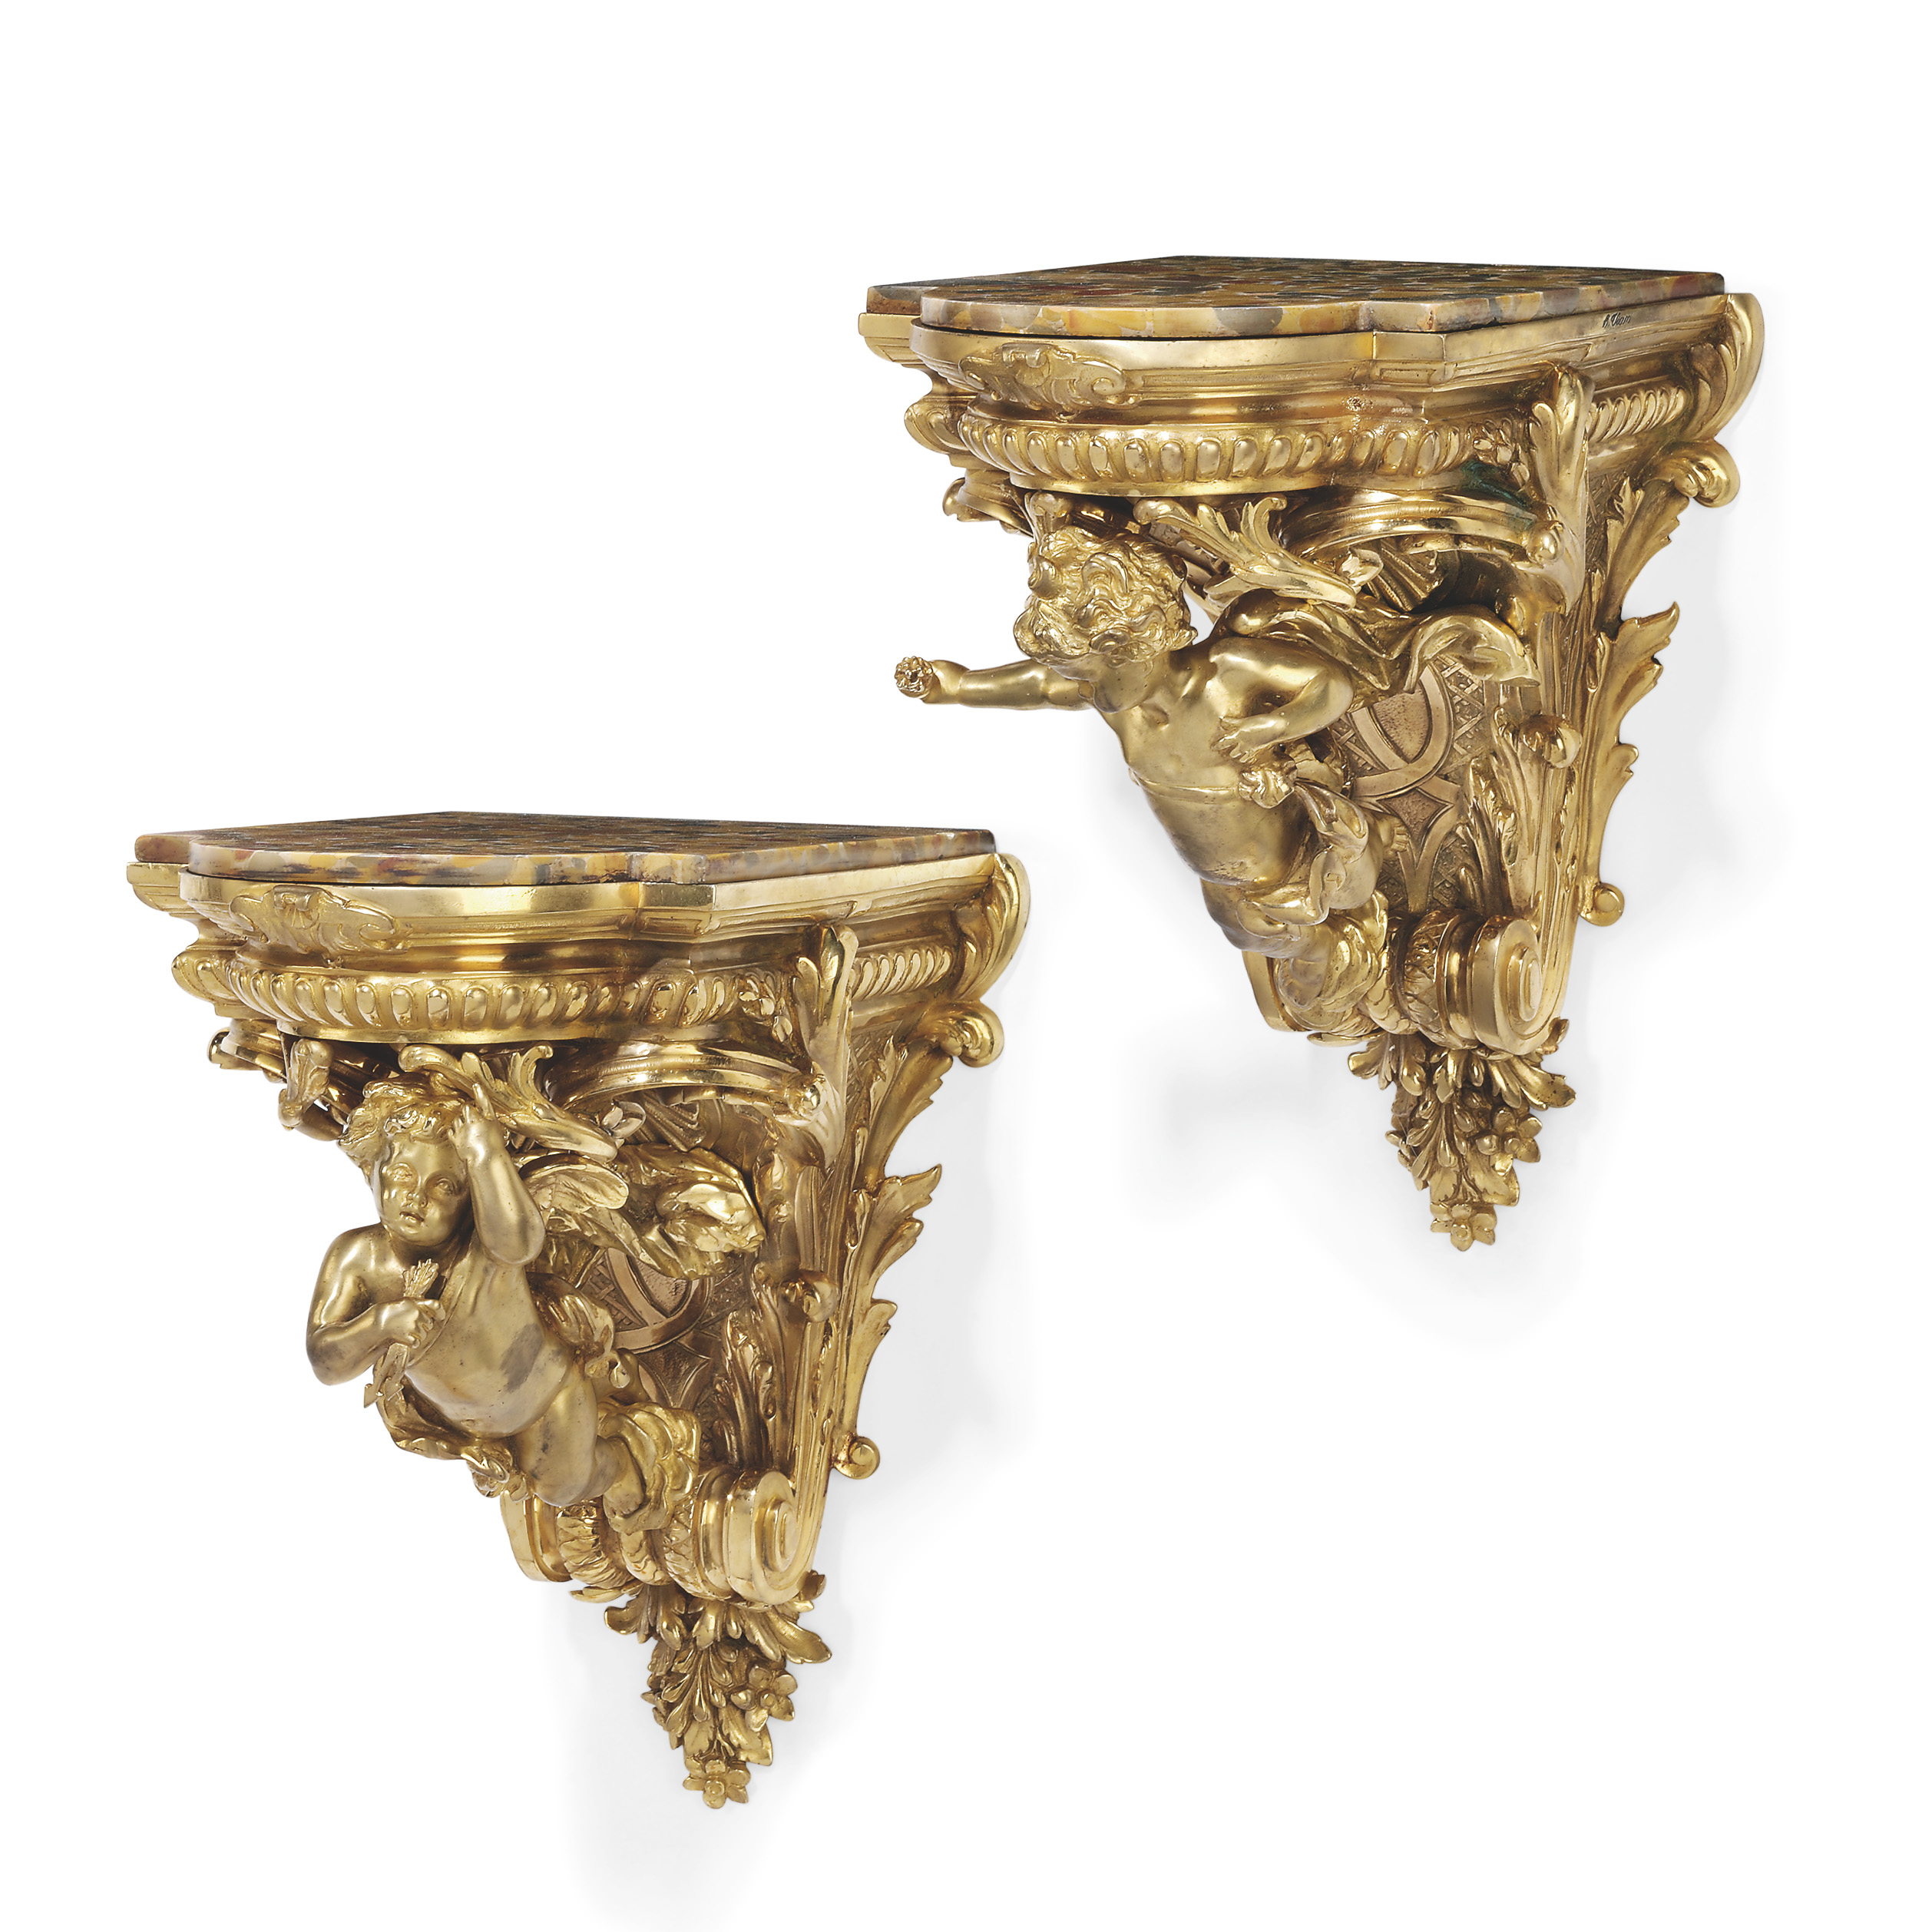 A PAIR OF FRENCH ORMOLU WALL-BRACKETS